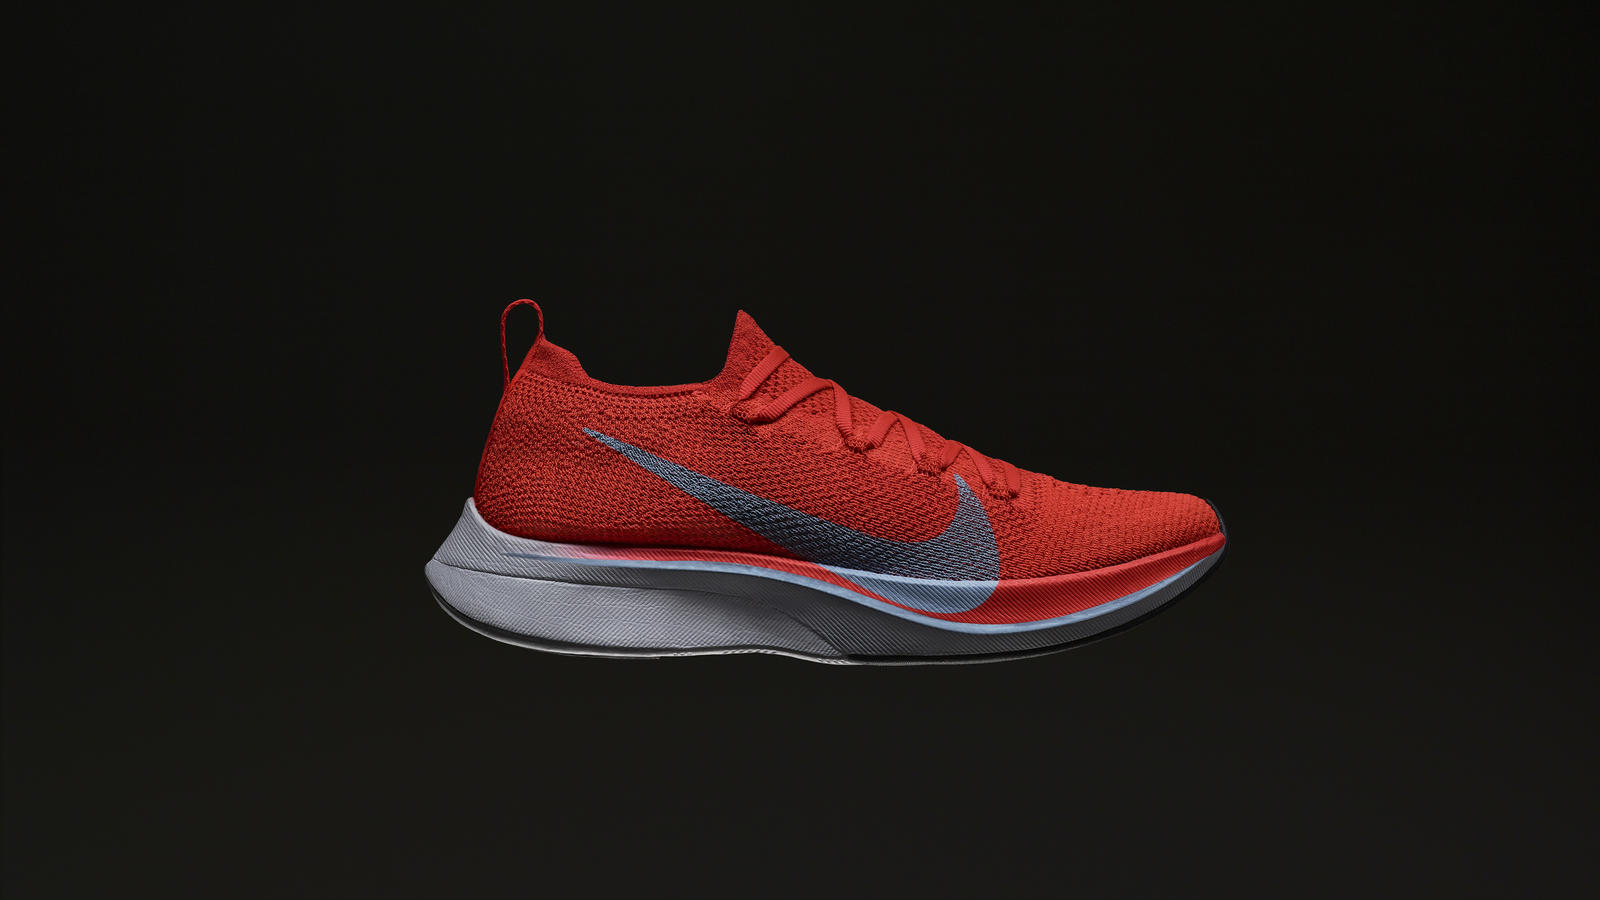 23022a02e94 How to Get the Nike Zoom Vaporfly 4% - Nike News